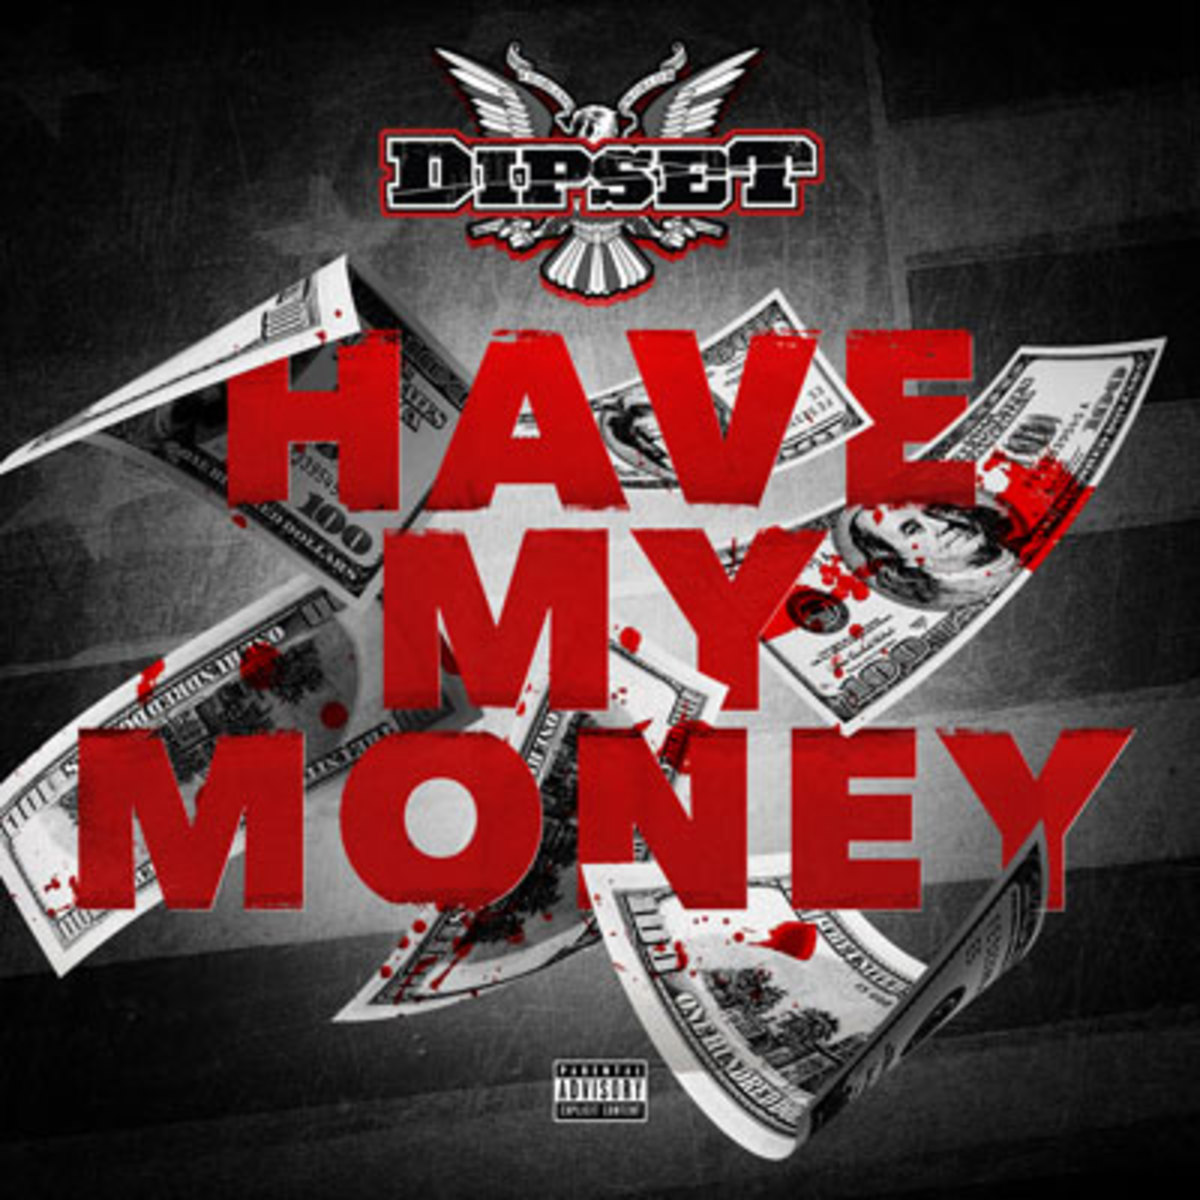 dipset-havemymoney2.jpg